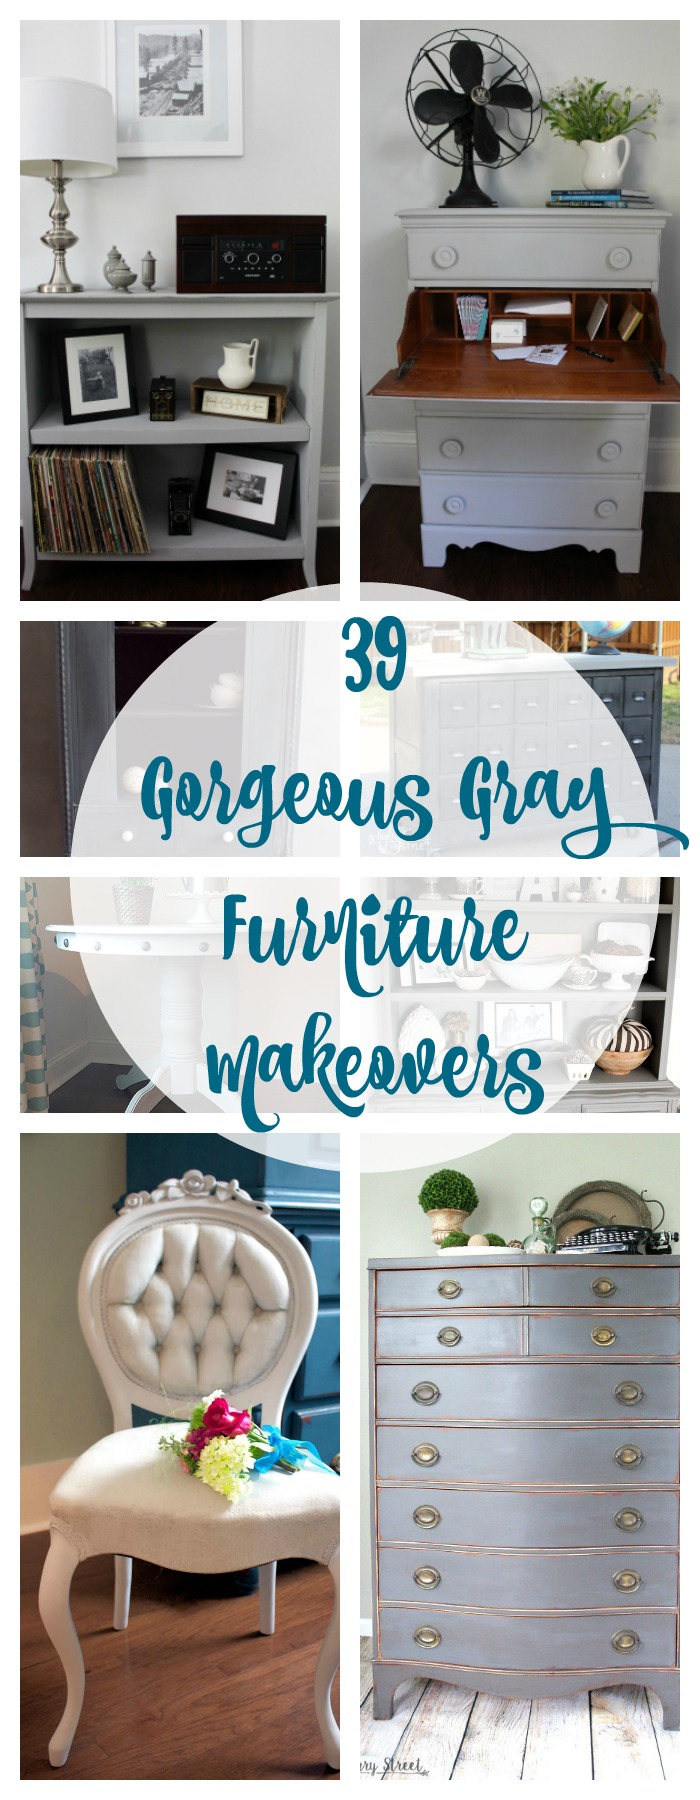 39 Gorgeous Gray Furniture Makeovers. Painted Furniture.